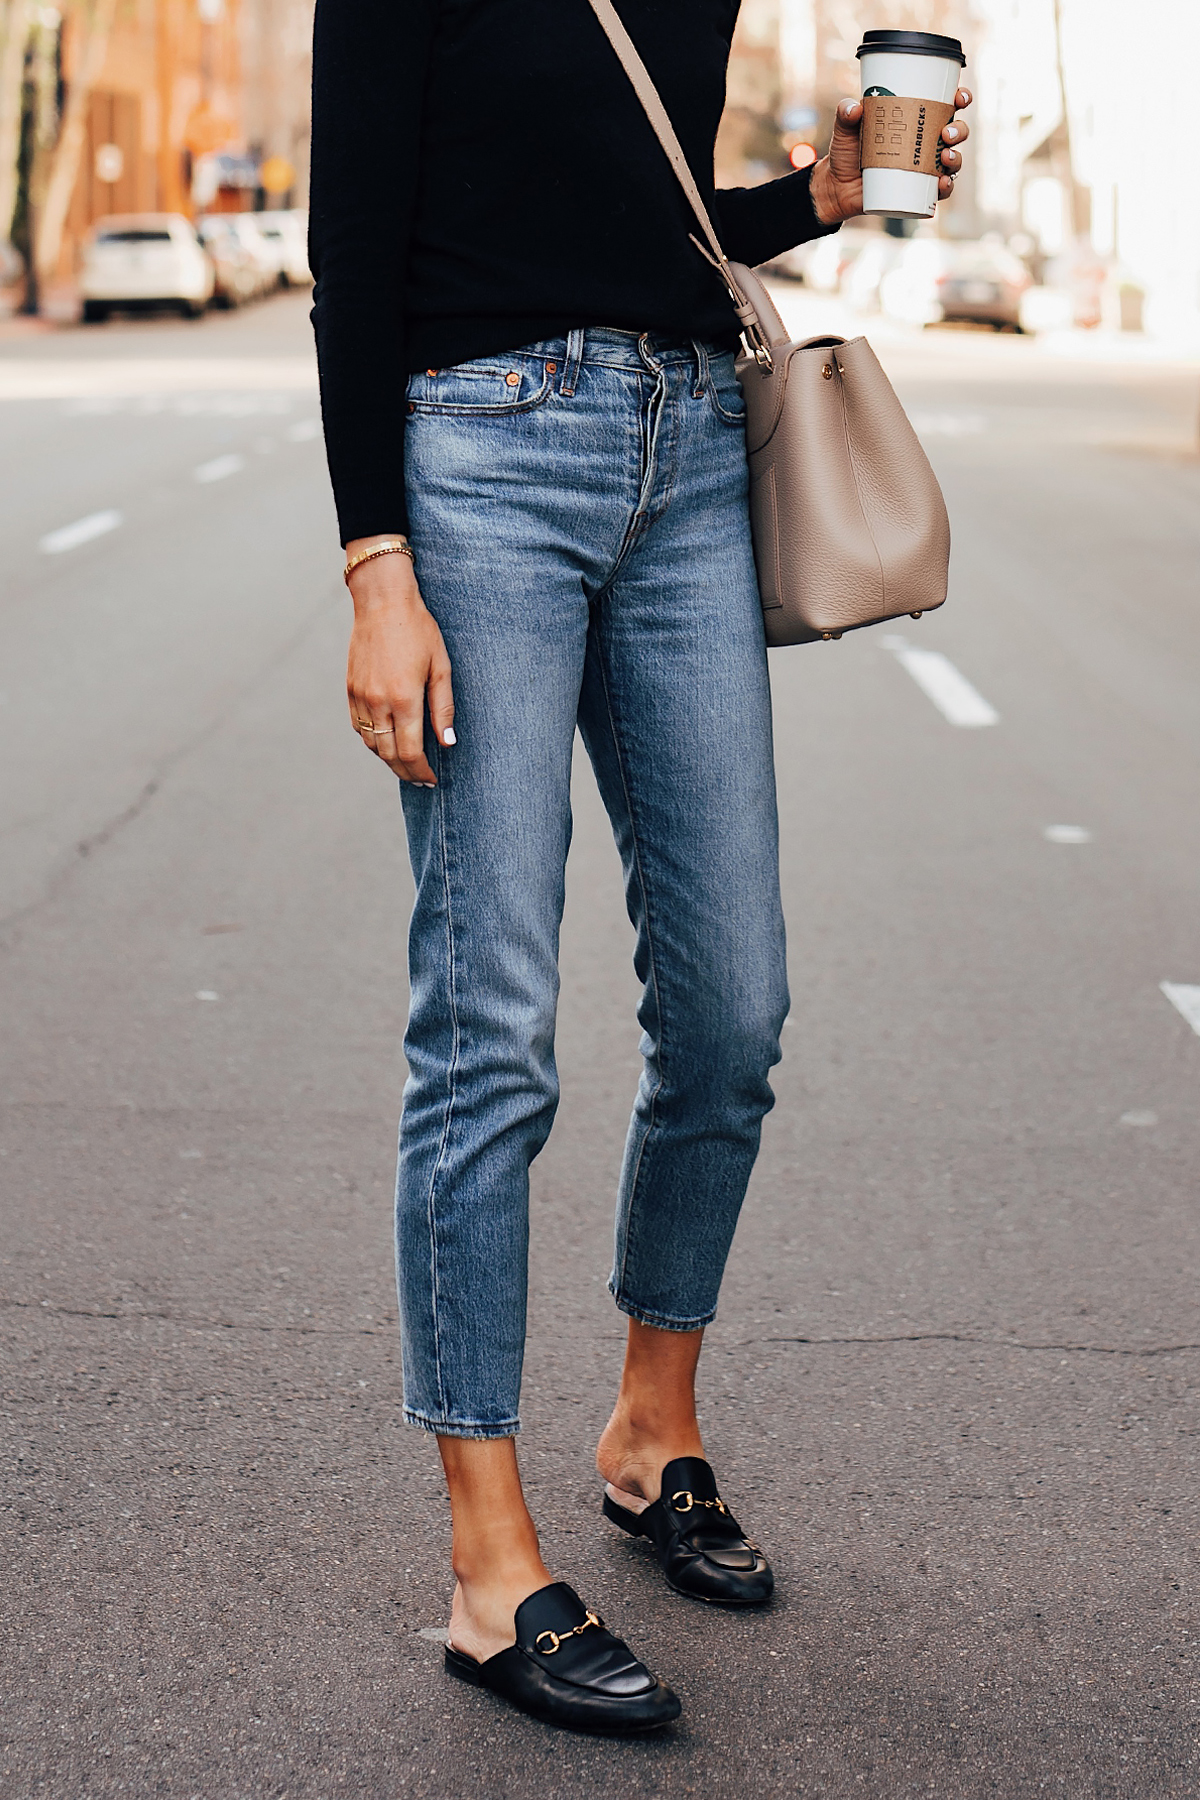 30c5c8c234d Woman Wearing Black Sweater Levis 501 Ankle Jeans Gucci Princetown Mules  Black Fashion Jackson San Diego